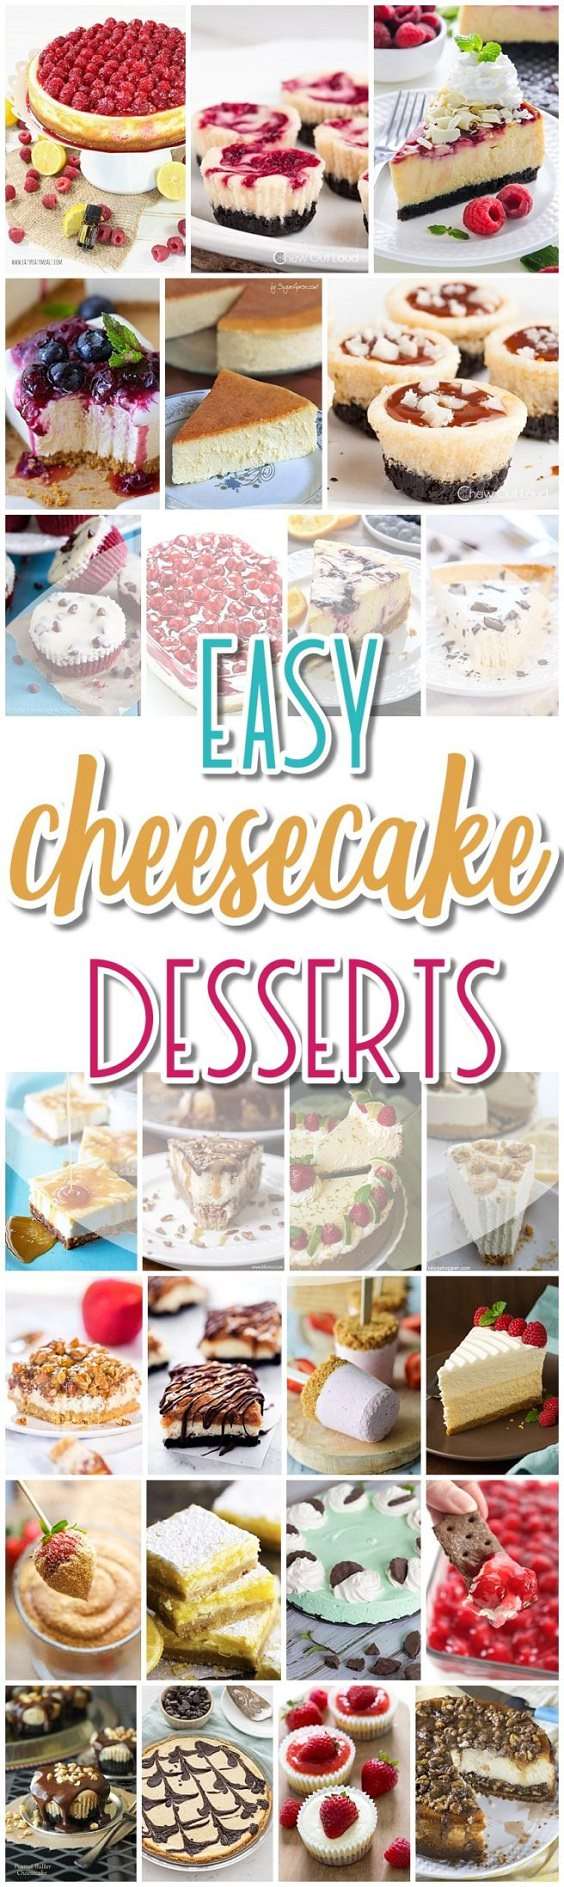 Make any day memorable and EXTRA special with one of these amazing dessert recipes. Get ready to save your favorites for every upcoming special occasion, holiday party and family fun night get together!